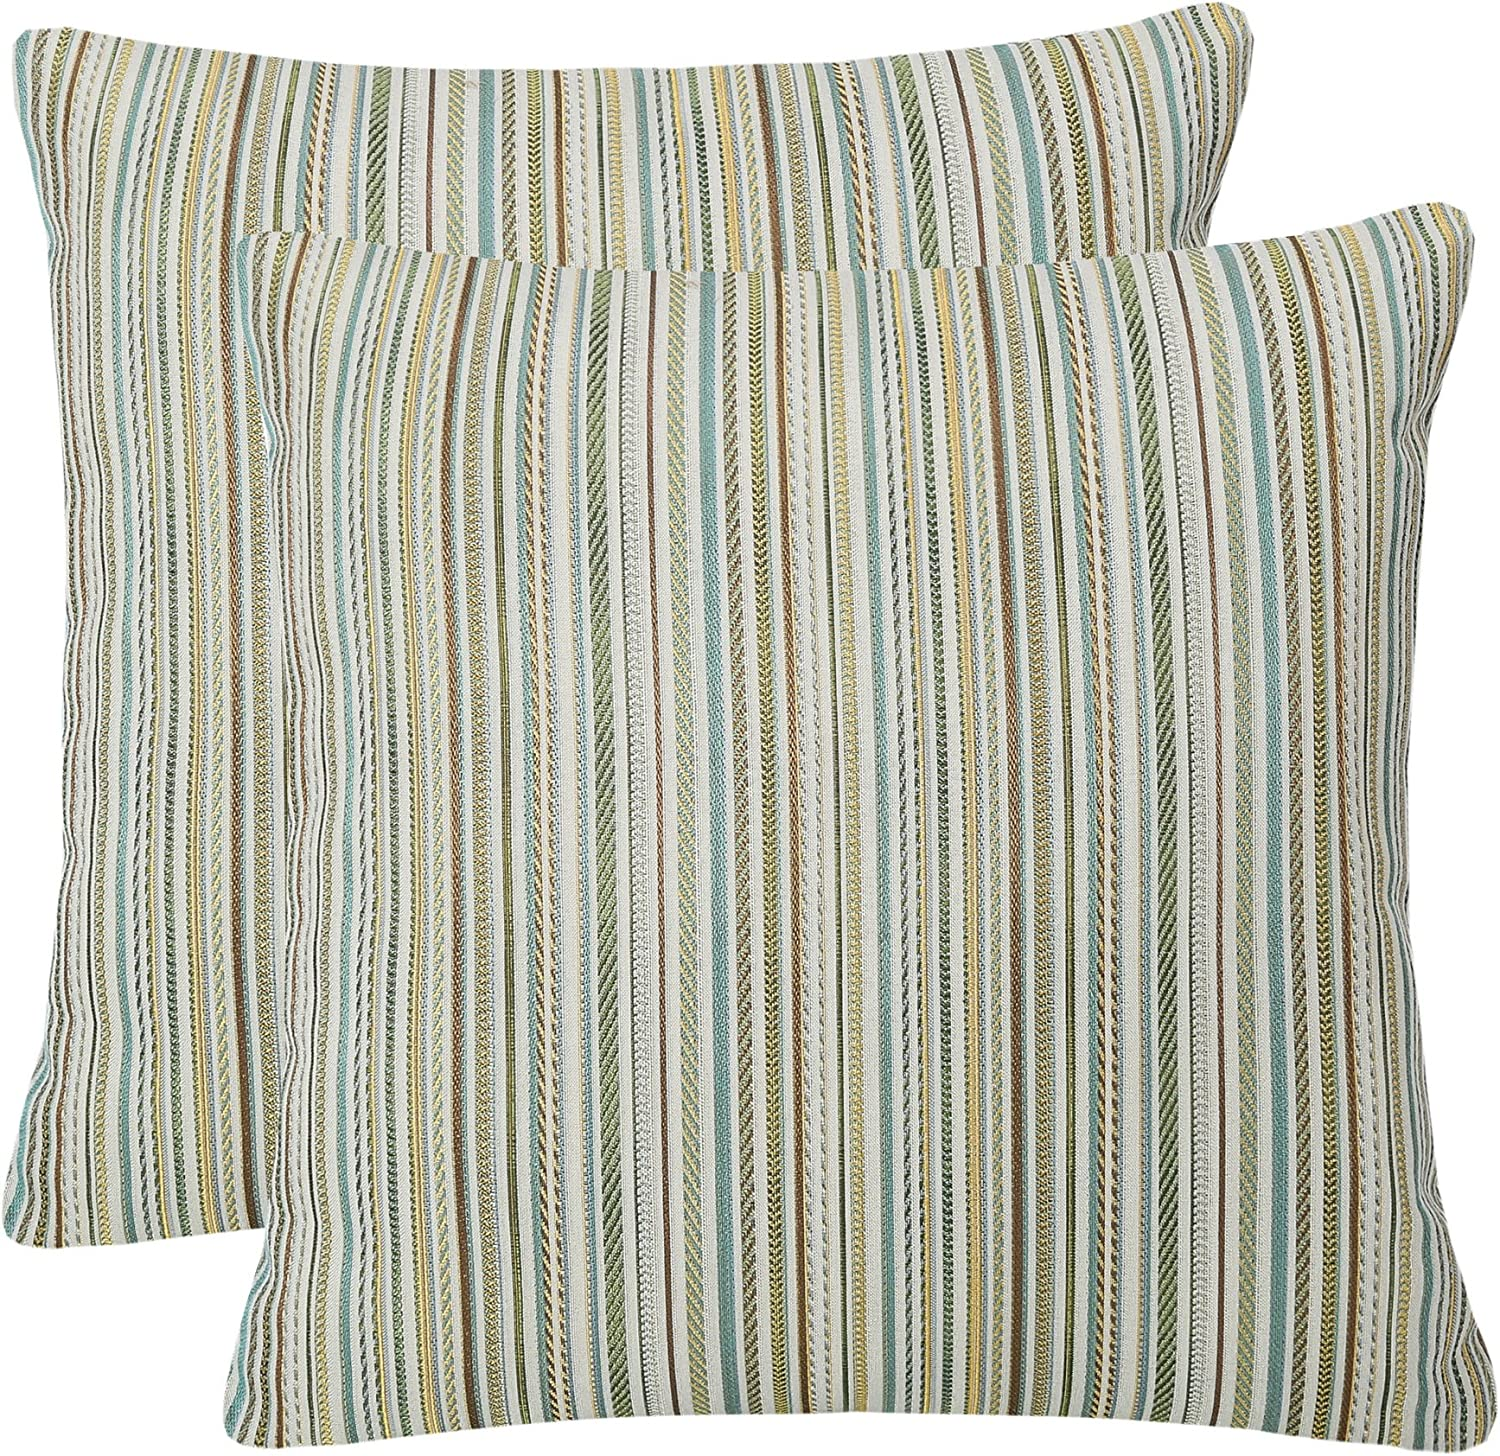 YUKORE Pack of 2 Simpledecor Throw Pillow Covers Couch Pillow Shells,20X20 Inches,Jacquard Colorful Stripes,Multicolor Teal